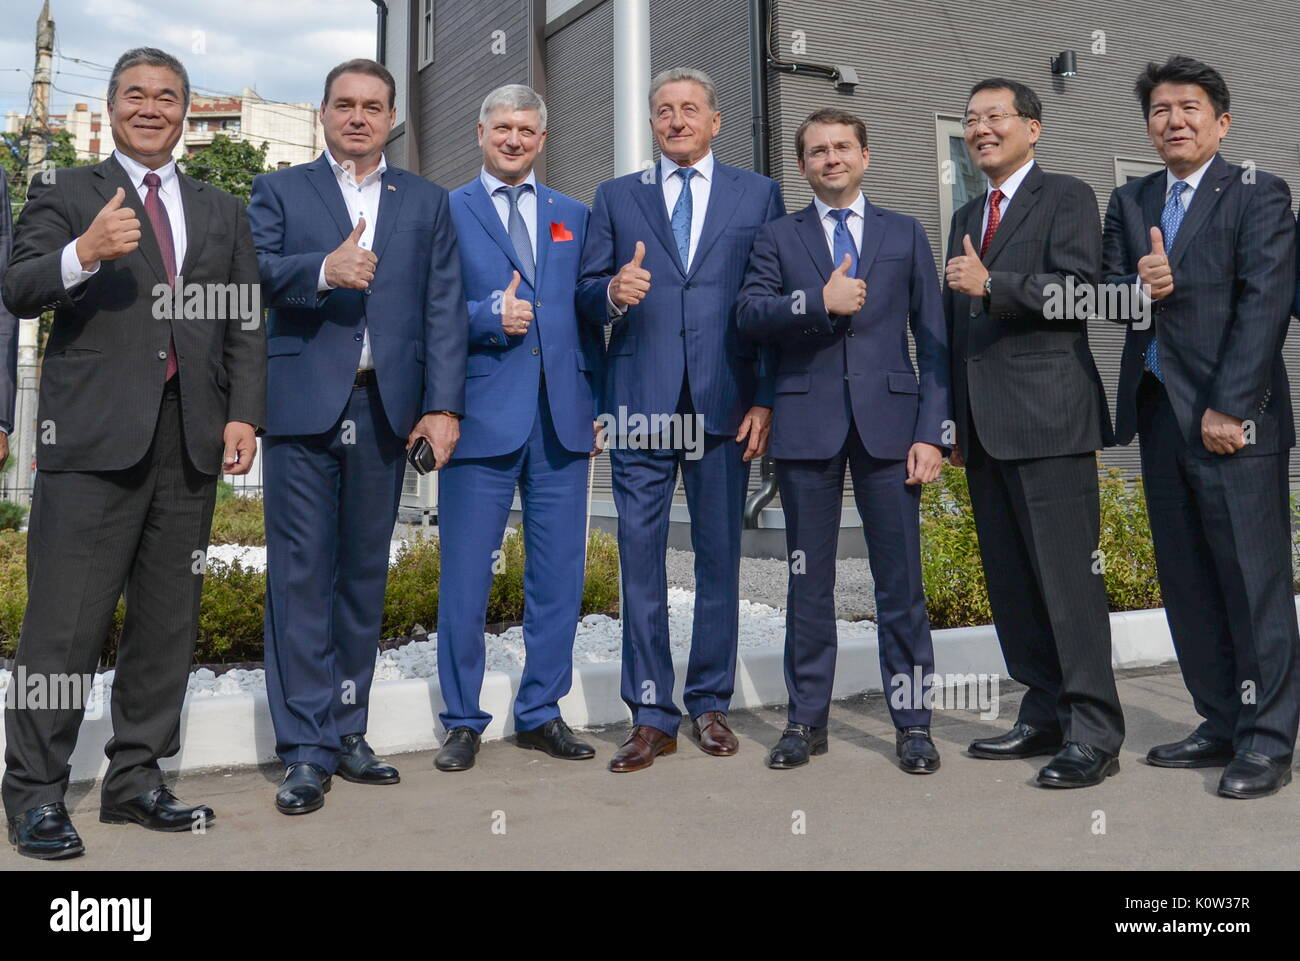 VORONEZH, RUSSIA - AUGUST 24, 2017: Voronezh Mayor Alexander Gusev (3rd L), Russia's Deputy Construction, Housing and Utilities Minister Andrei Chibis (3rd L), Japan's Deputy Land, Infrastructure, Transport and Tourism Minister Koichi Yoshida (2nd R), and Nice Holdings, Inc. President and Representative Director Kiyoshi Higurashi (R) at the opening of the first Russian-Japanese two-storey smart home made of wood and eco-friendly materials. The house is equipped with energy management system, air quality monitors and temperature sensors. Kristina Brazhnikova/TASS - Stock Image